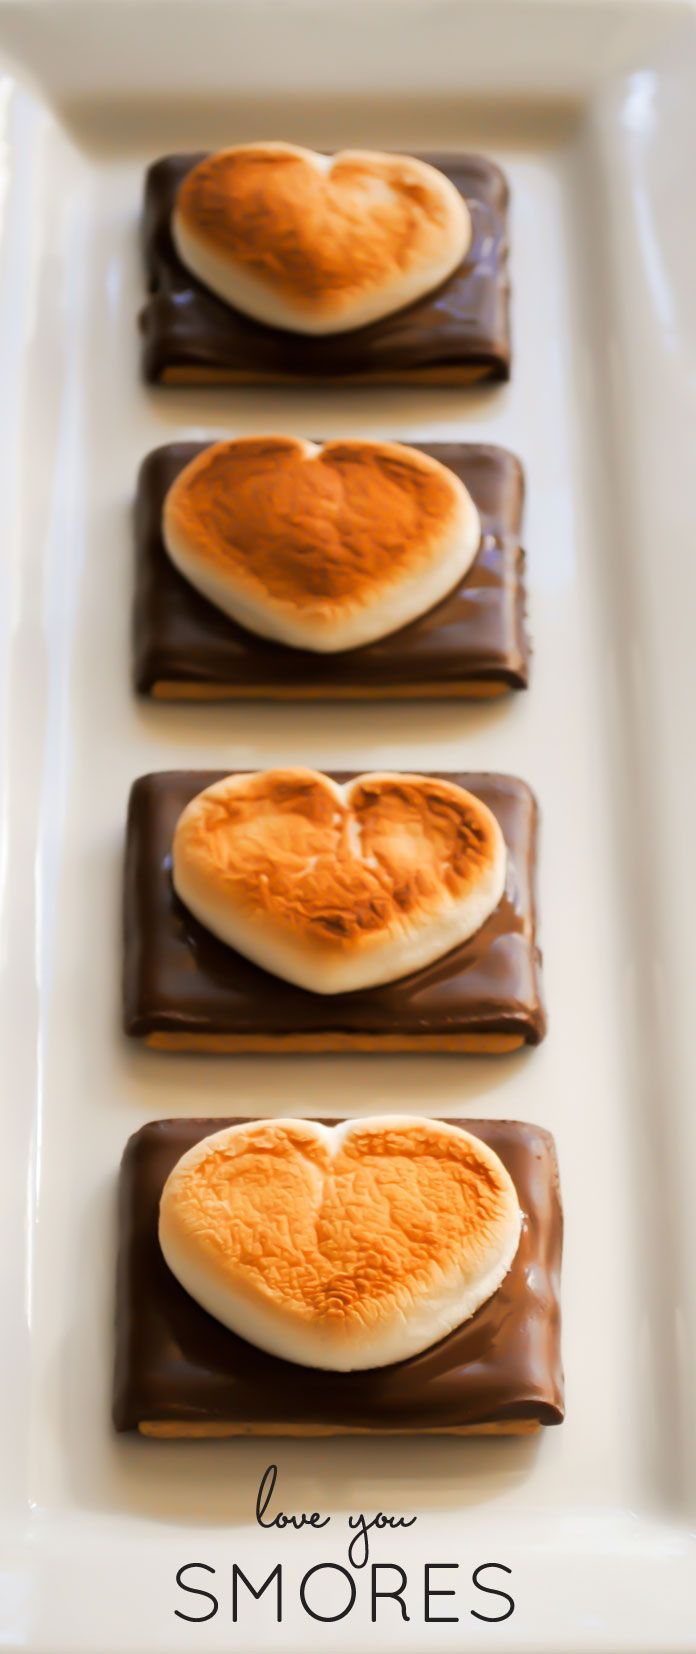 super easy and quick | I Love You S'Mores  |  by Carrie Sellman